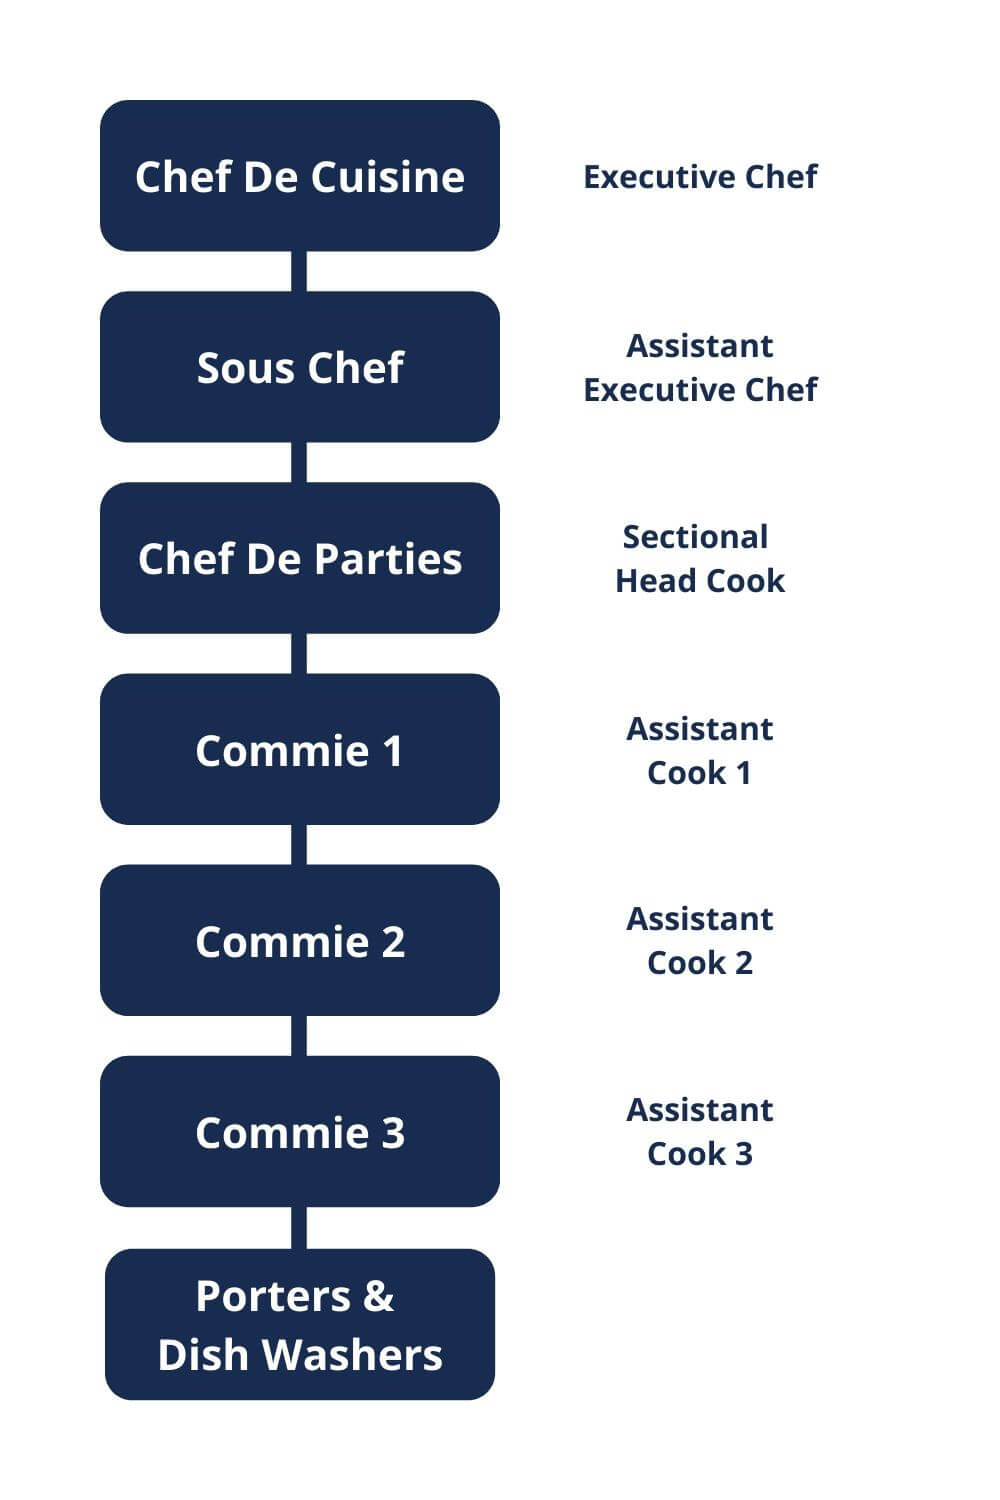 An example of the hierarchy of any world class 5-star Hotel or Restaurant